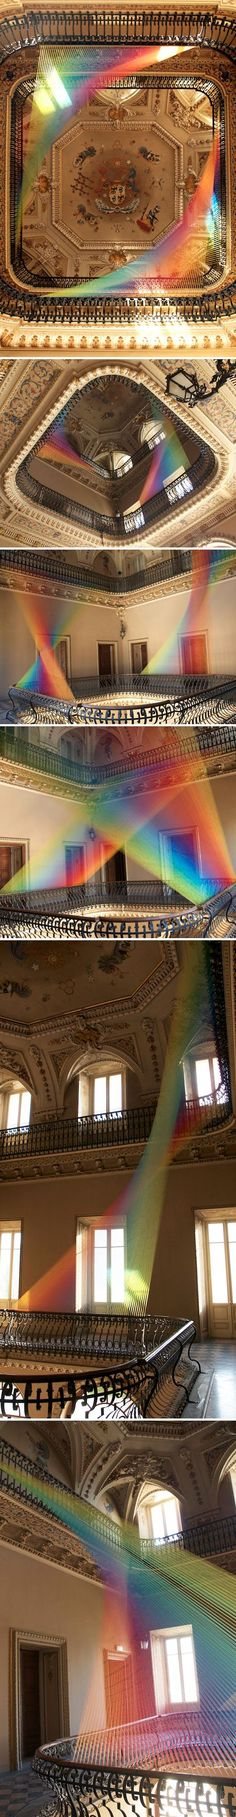 Como, Italy - unbelievable thread installation by Mexican artist Gabriel Dawe